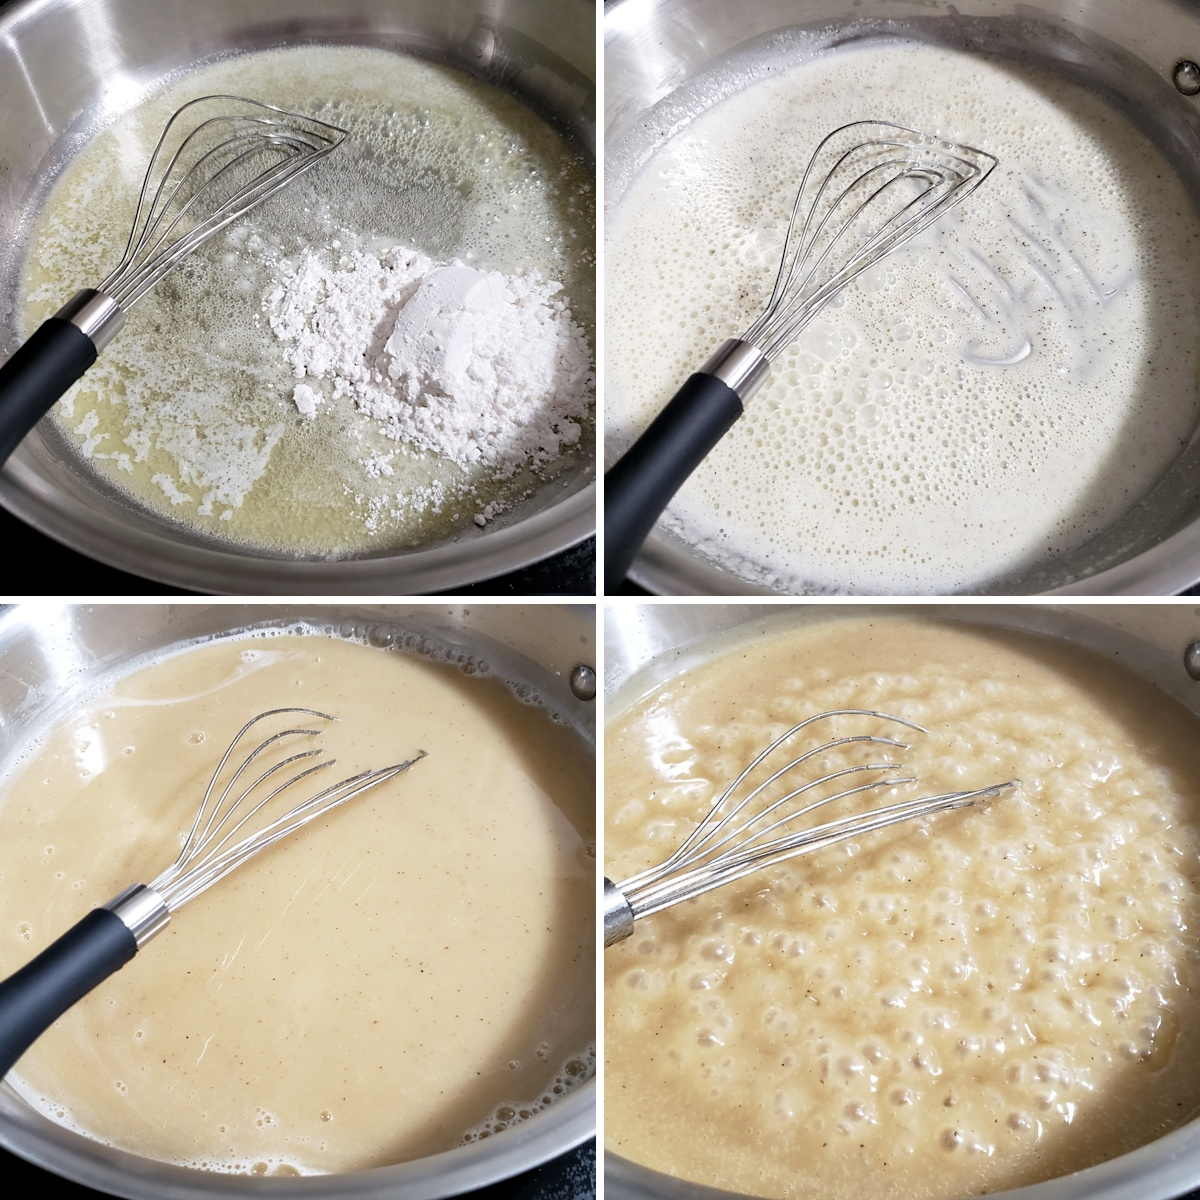 Whisking gravy in a pan on the stove top.